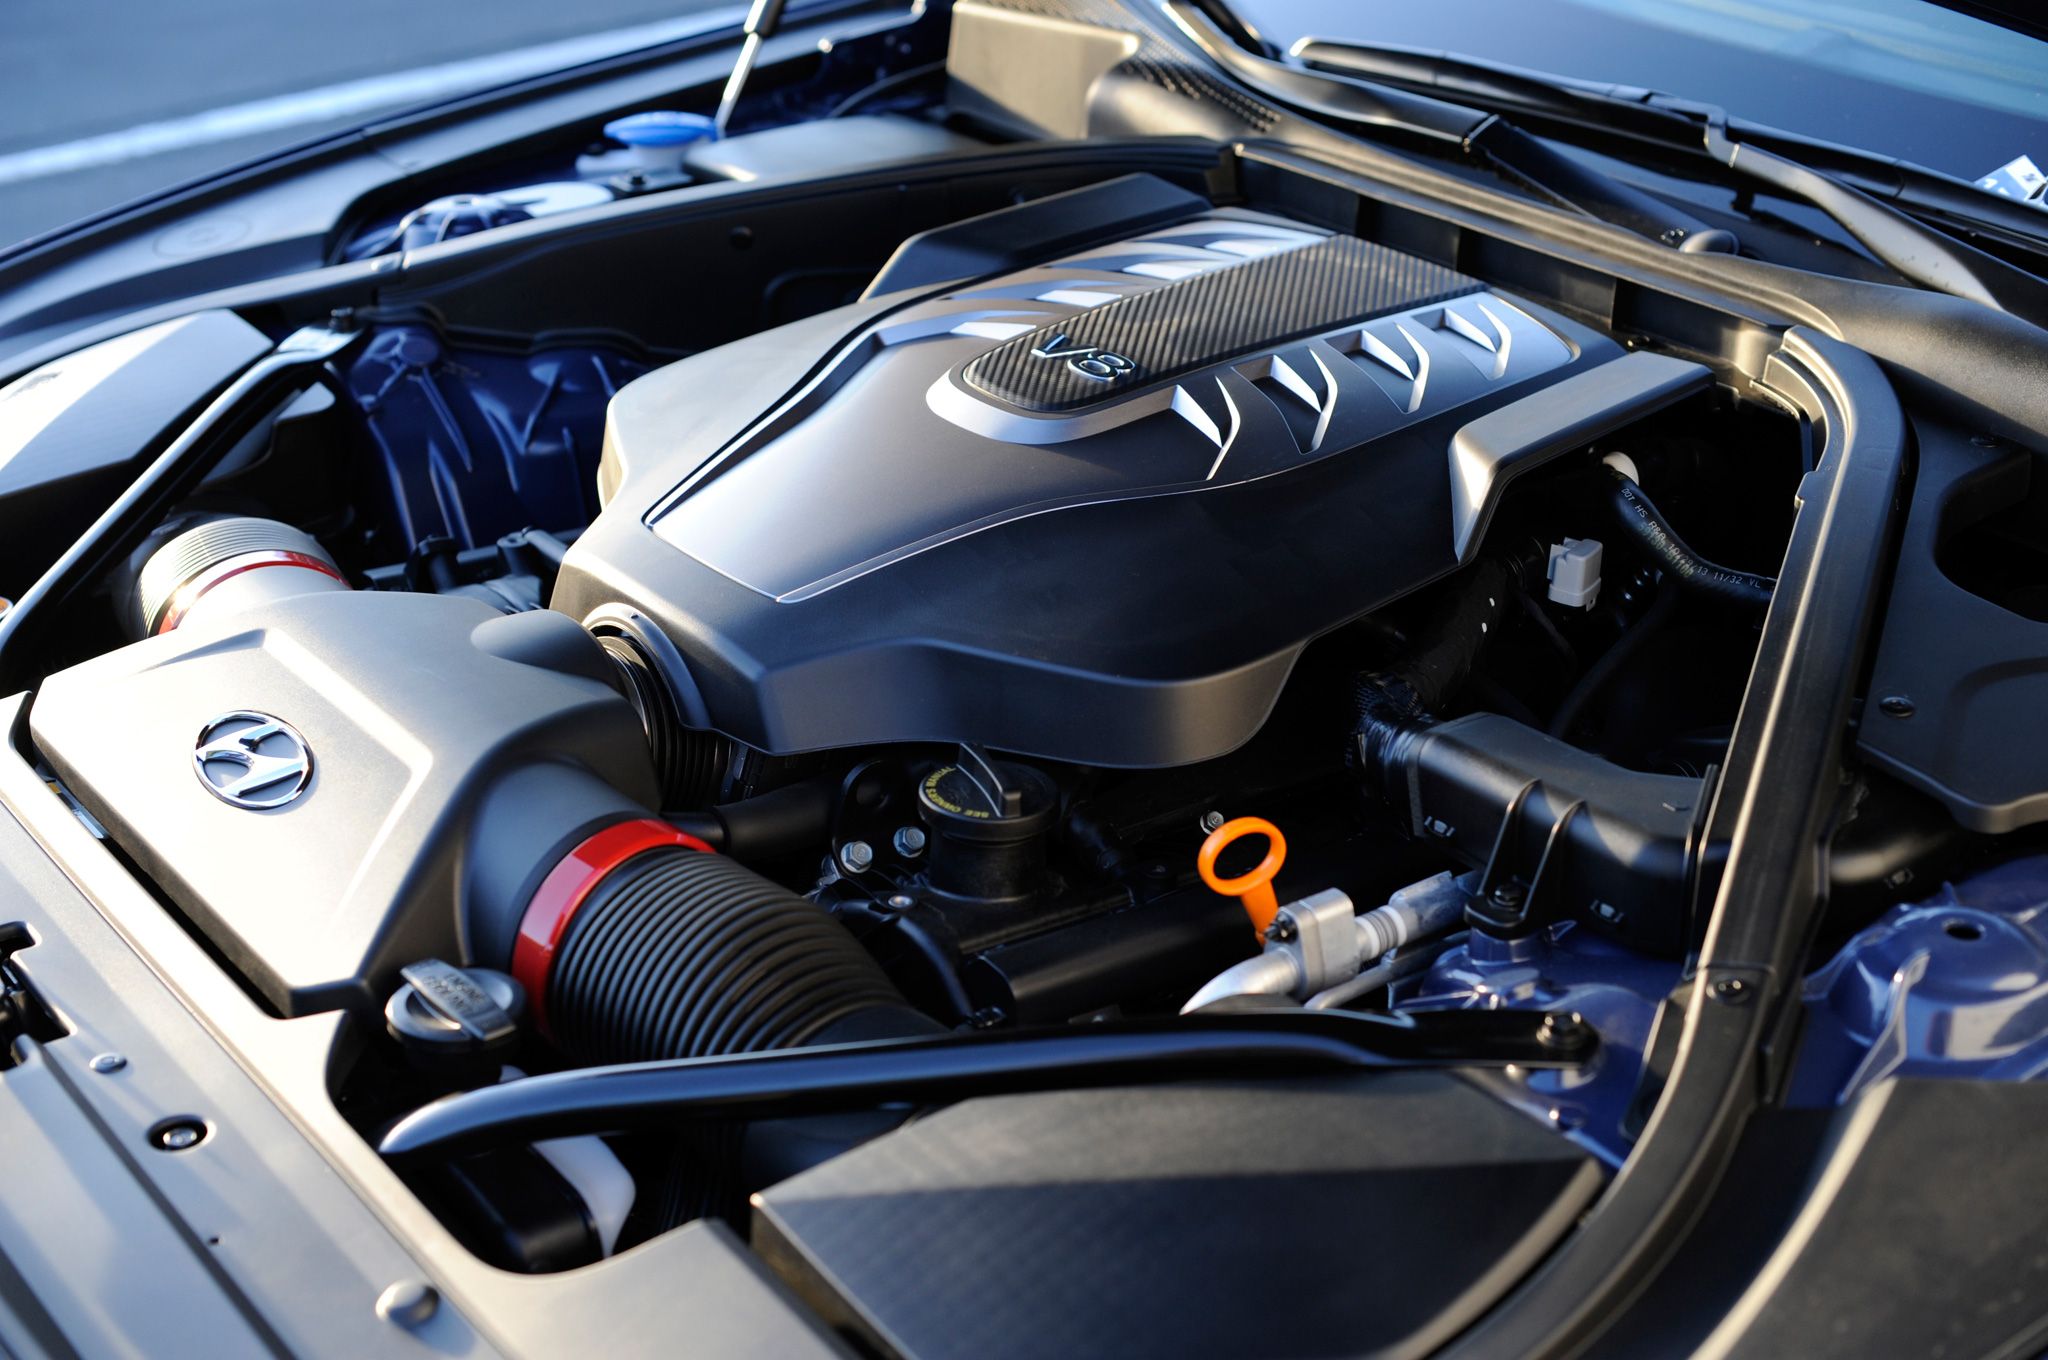 2015 Hyundai Genesis V8 Engine View (View 1 of 11)